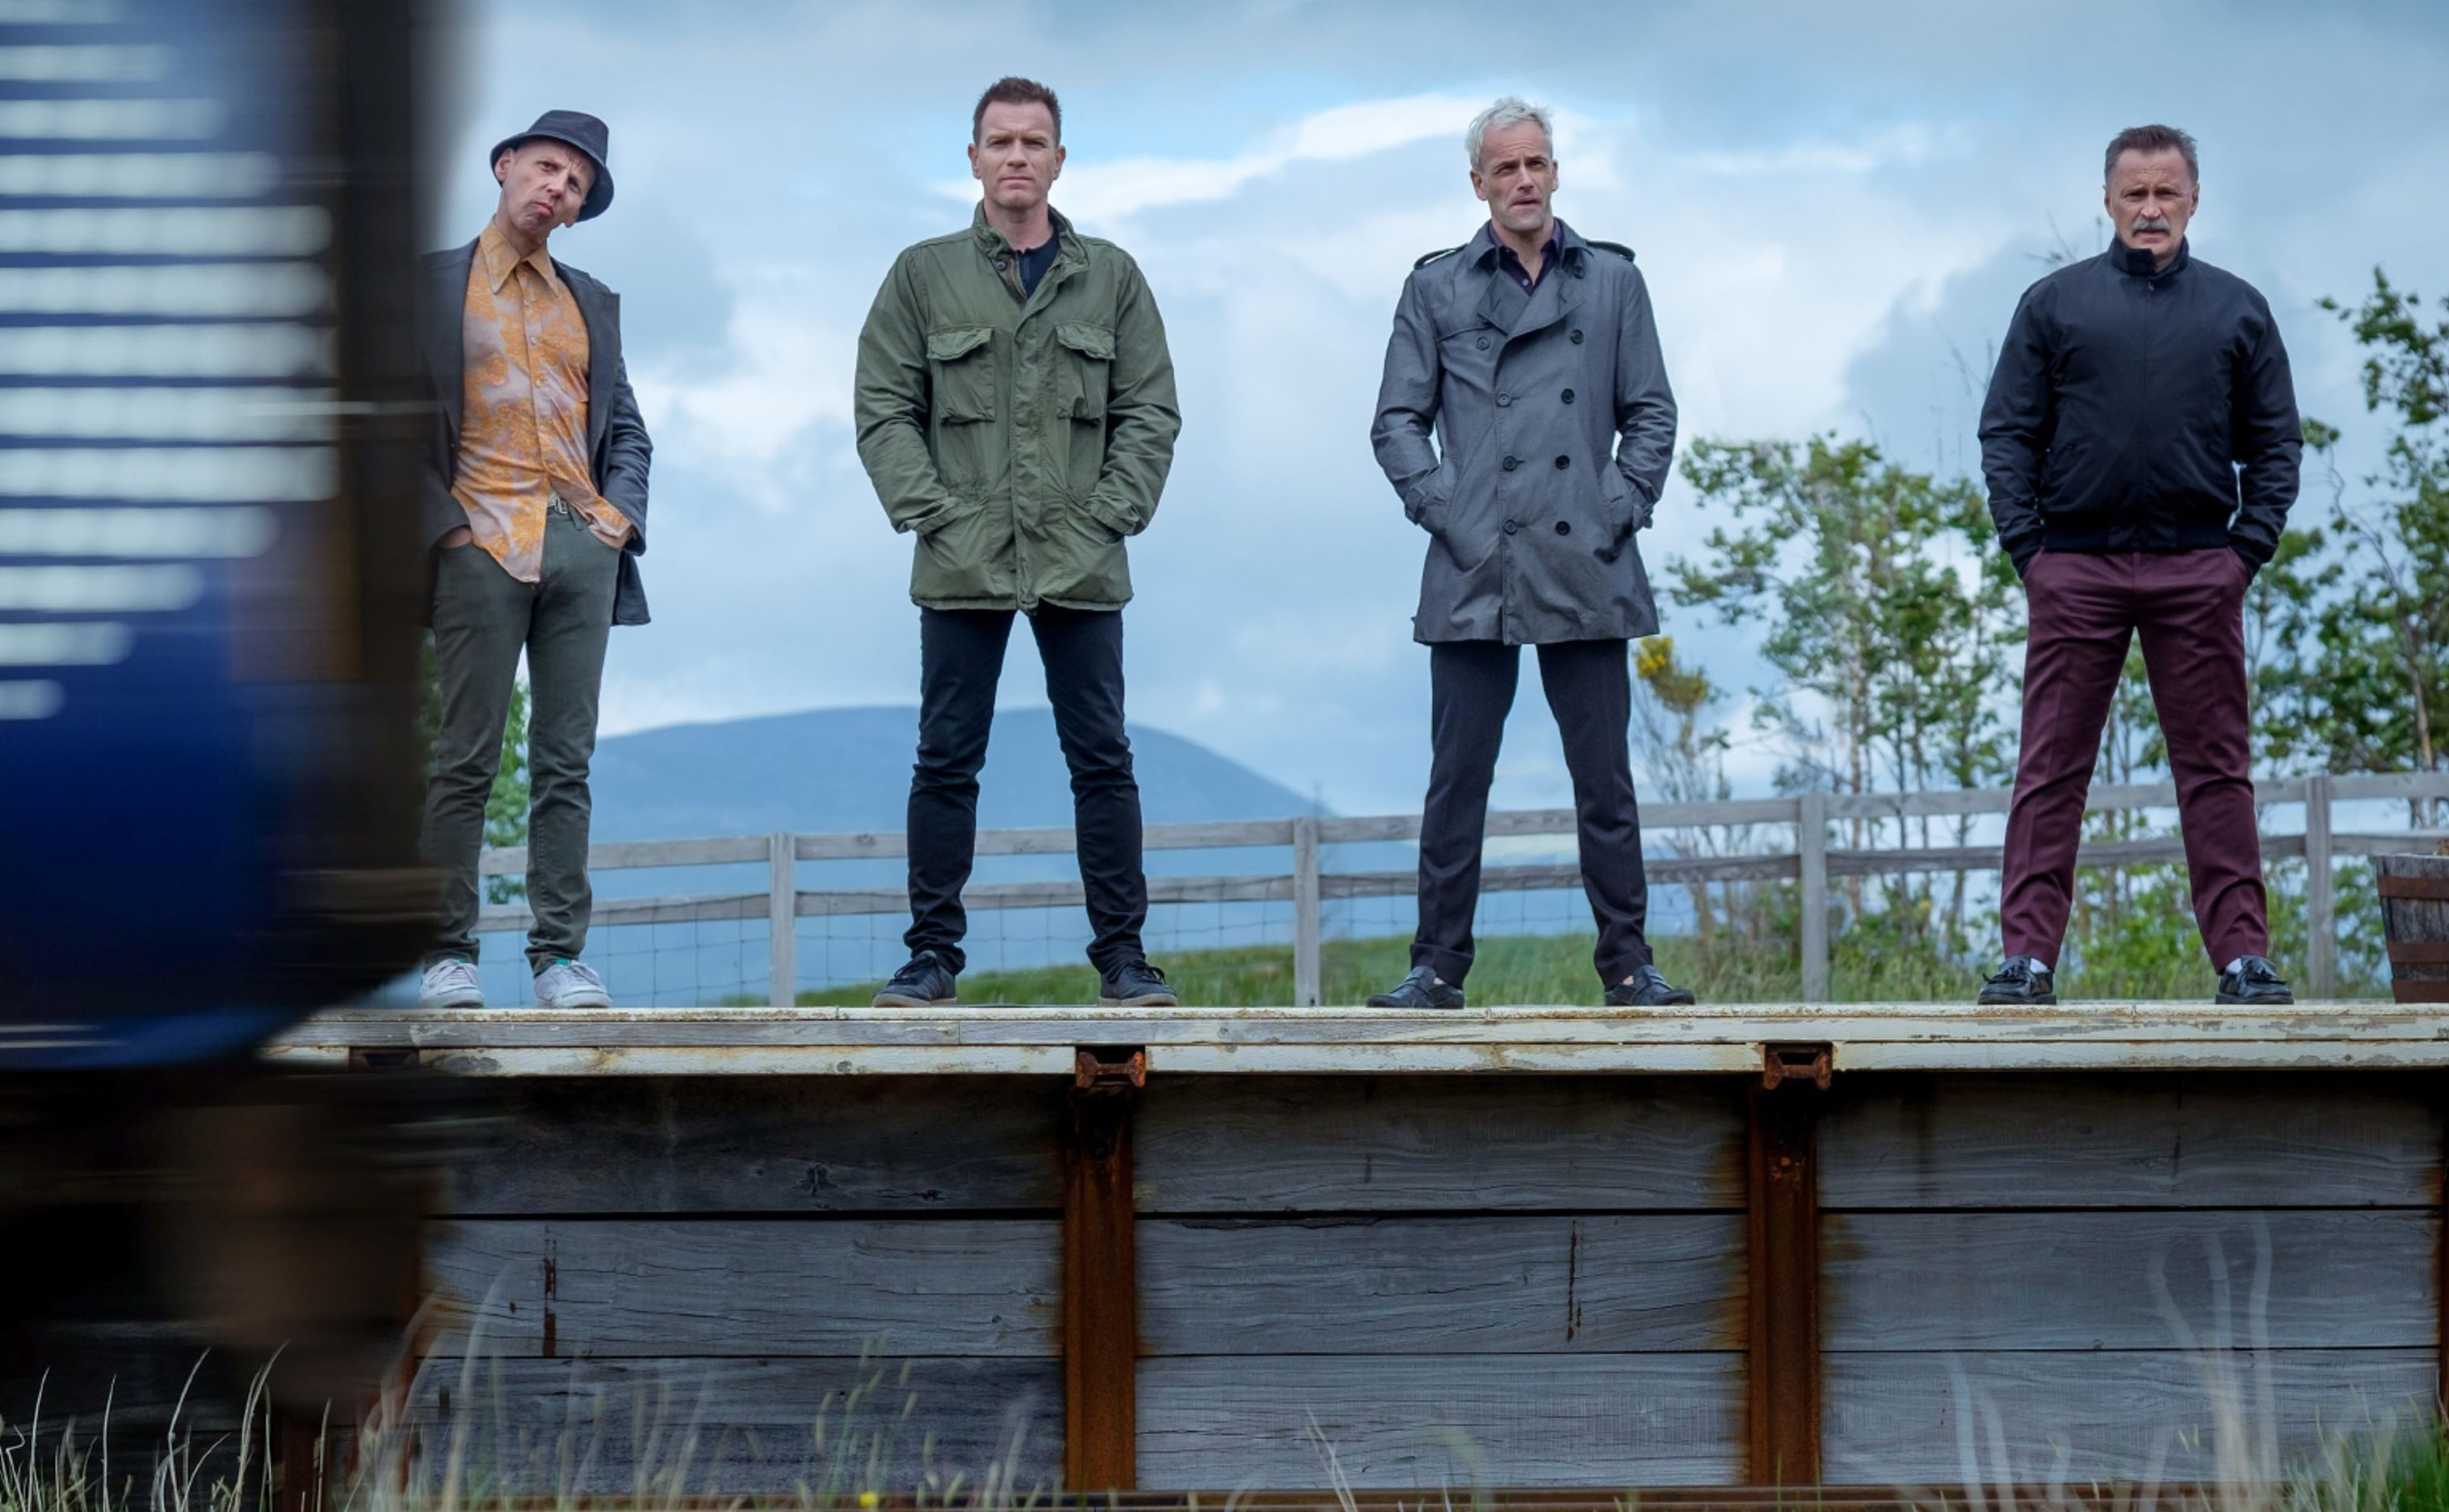 The cast of Trainspotting 2